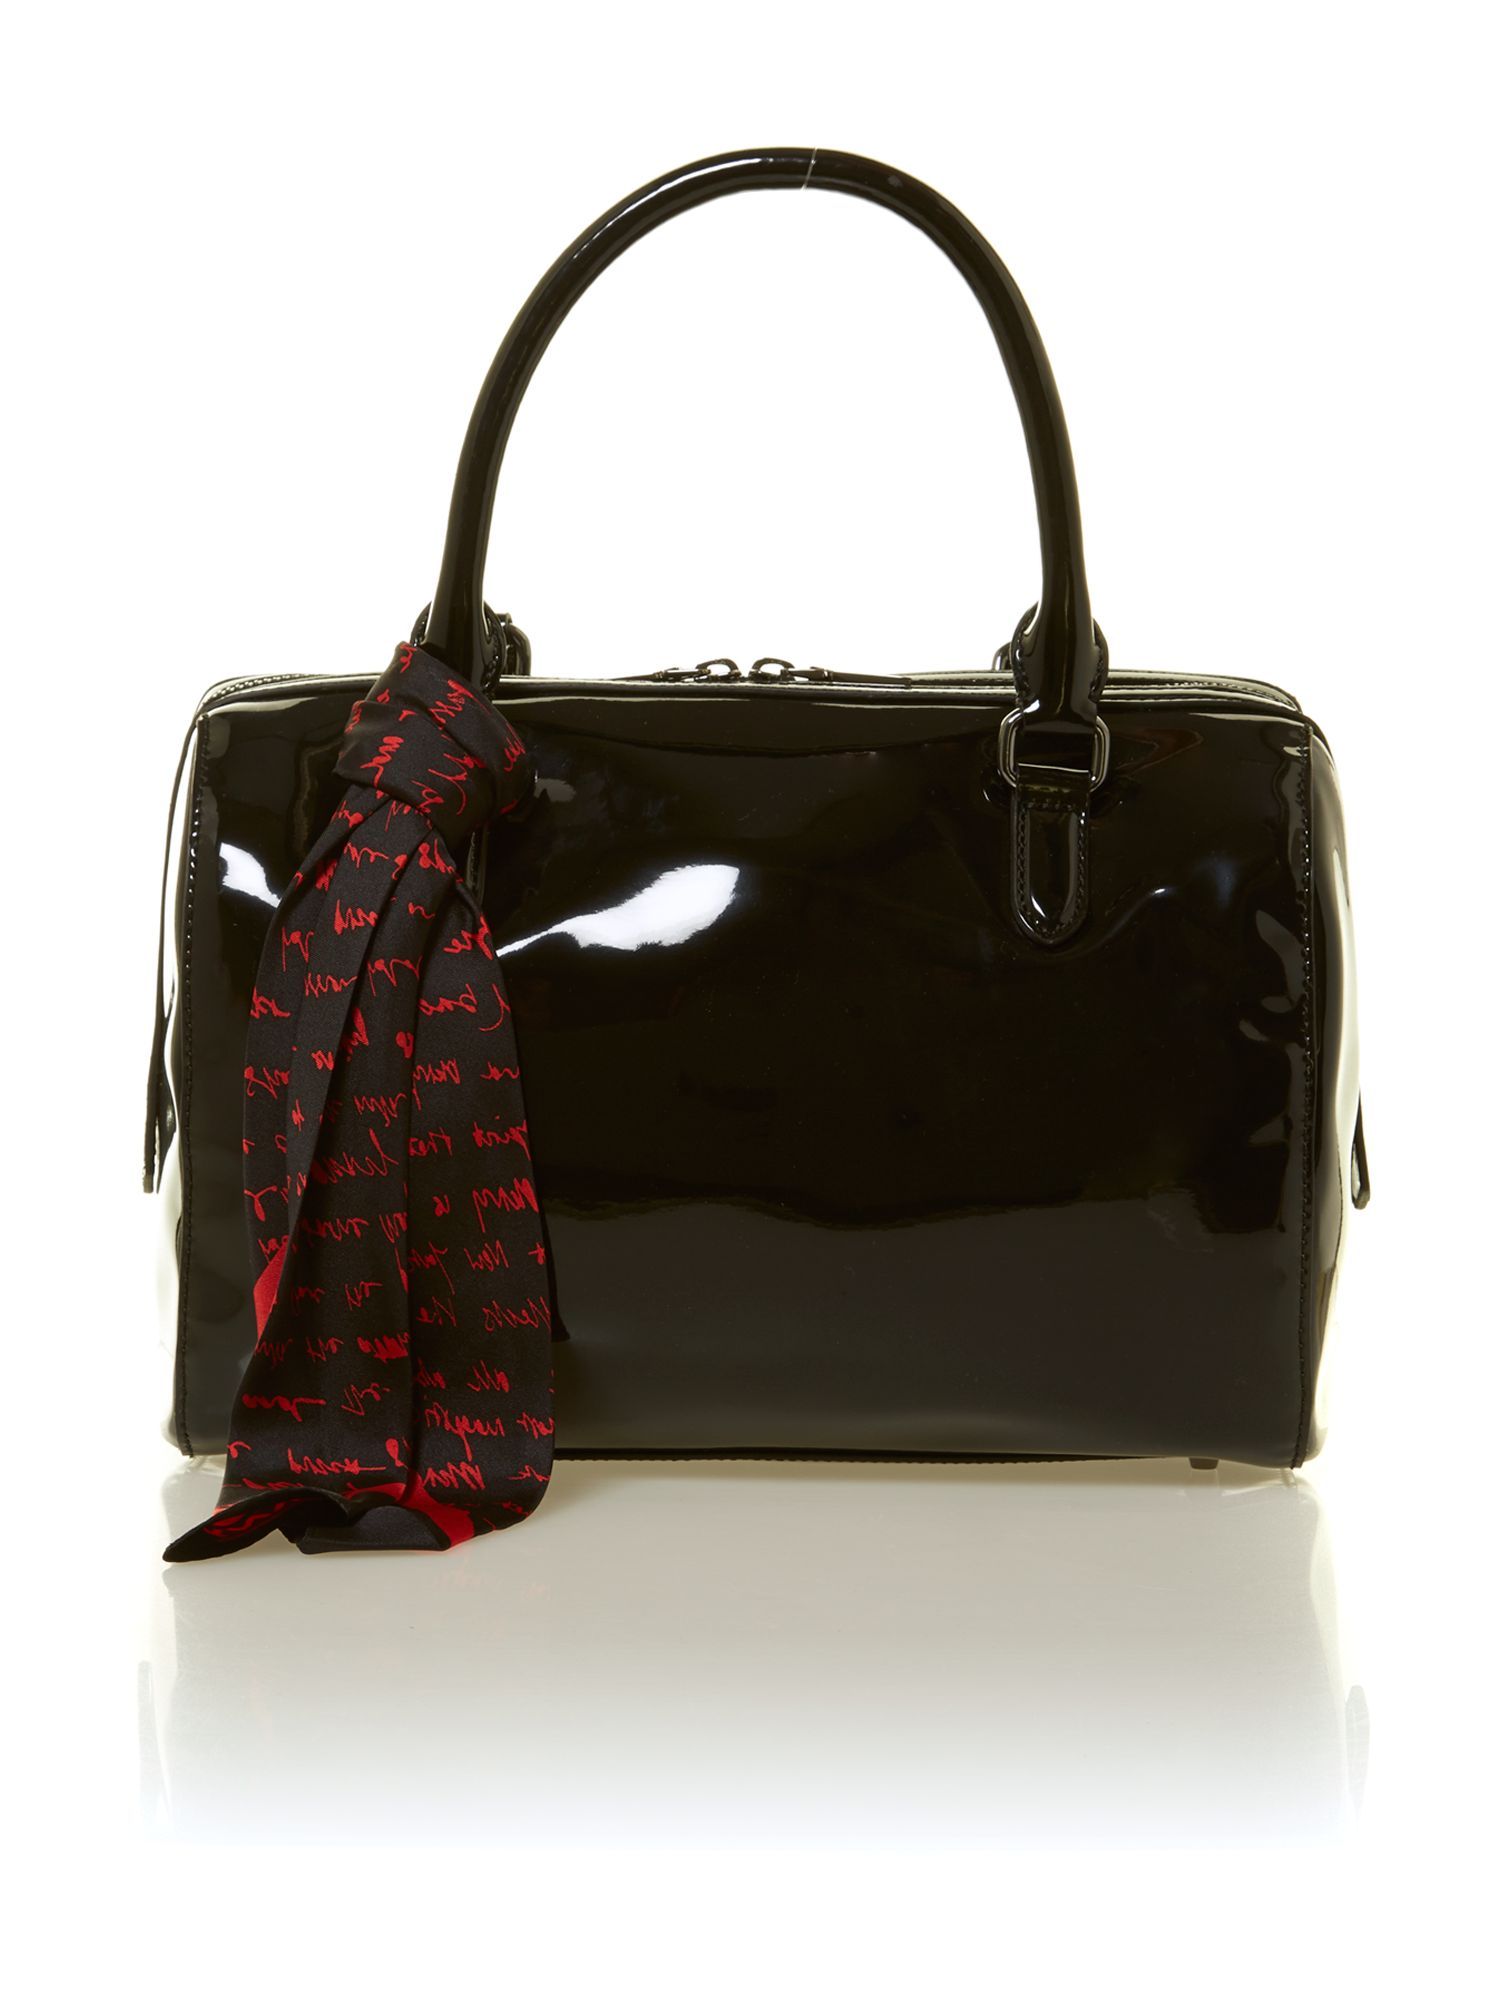 Black patent scarf bowling bag